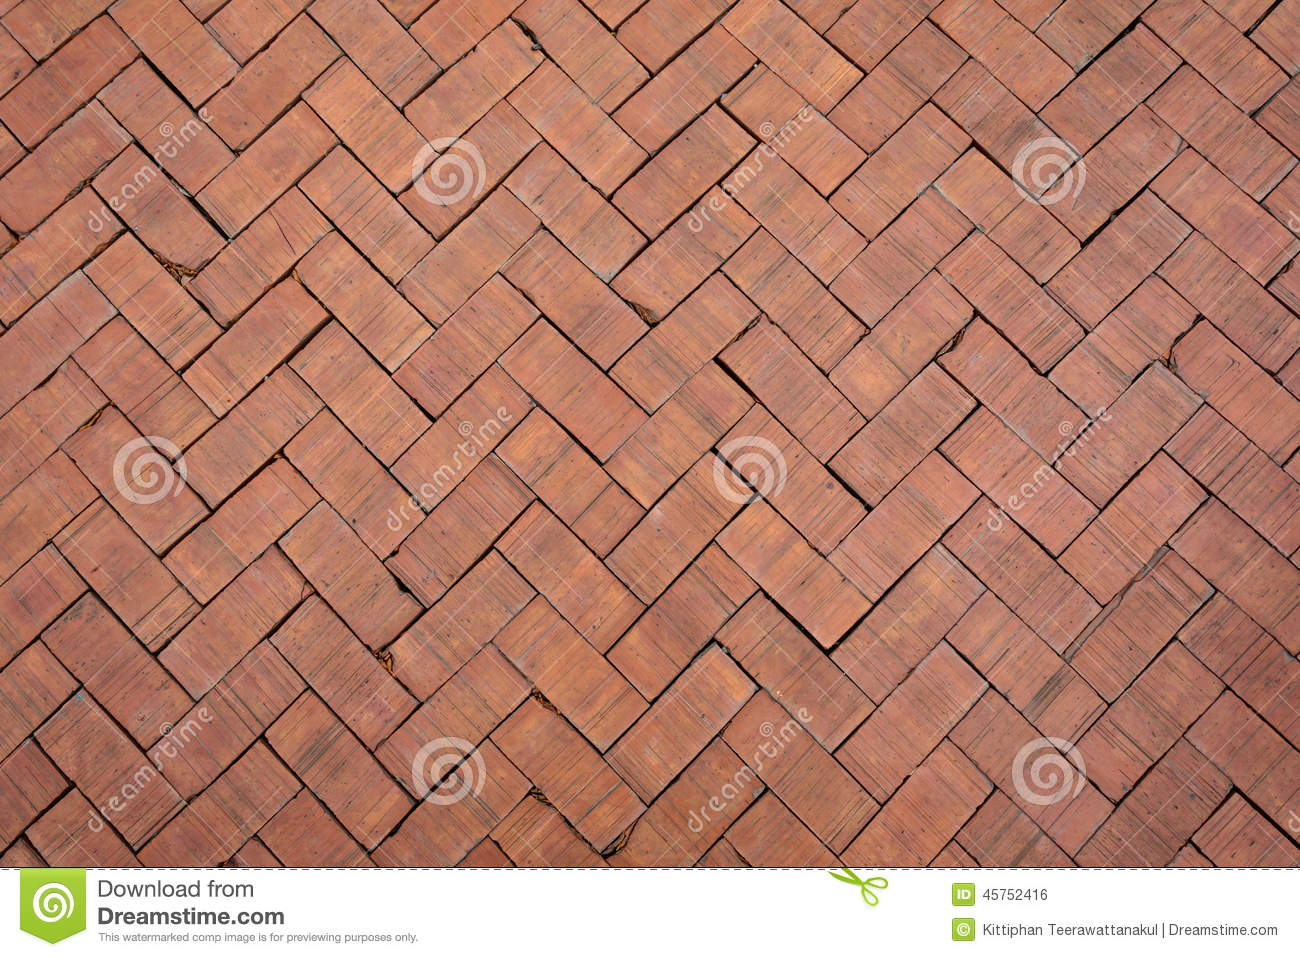 Red Paving Stones : Red brick paving stones stock photo image of courtyard